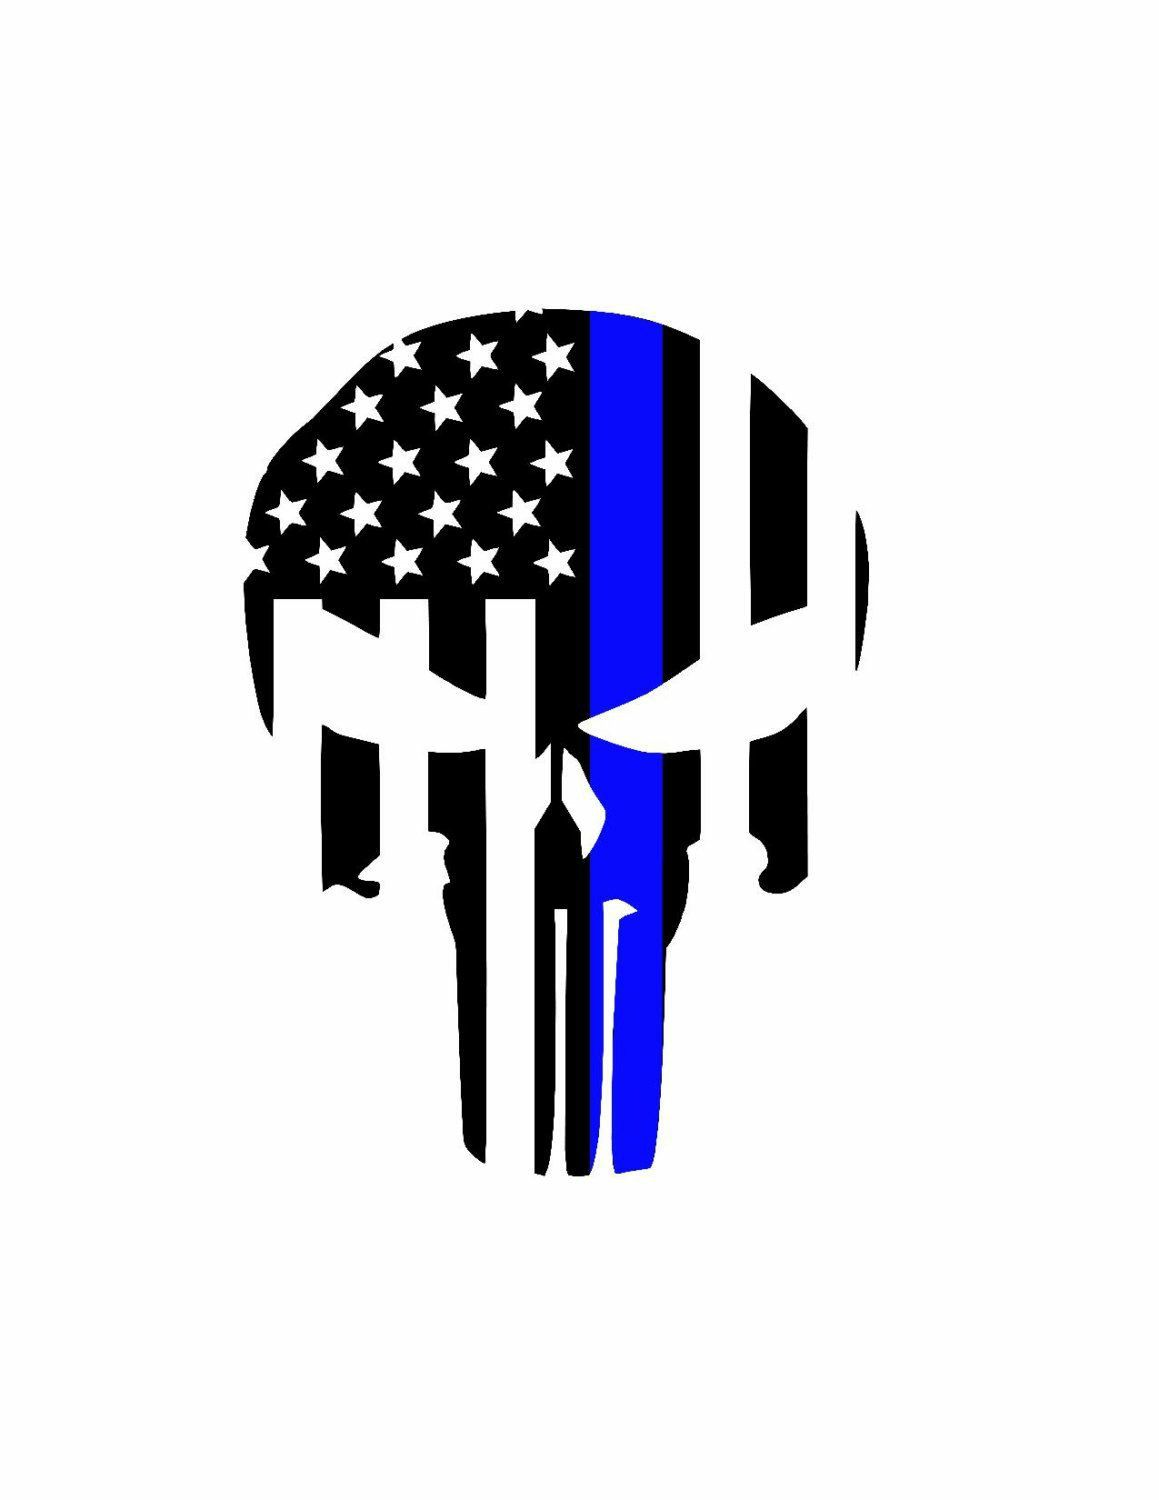 Pin By Paige Piper On Decals Police Decal Cricut Projects Vinyl Punisher [ 1500 x 1159 Pixel ]